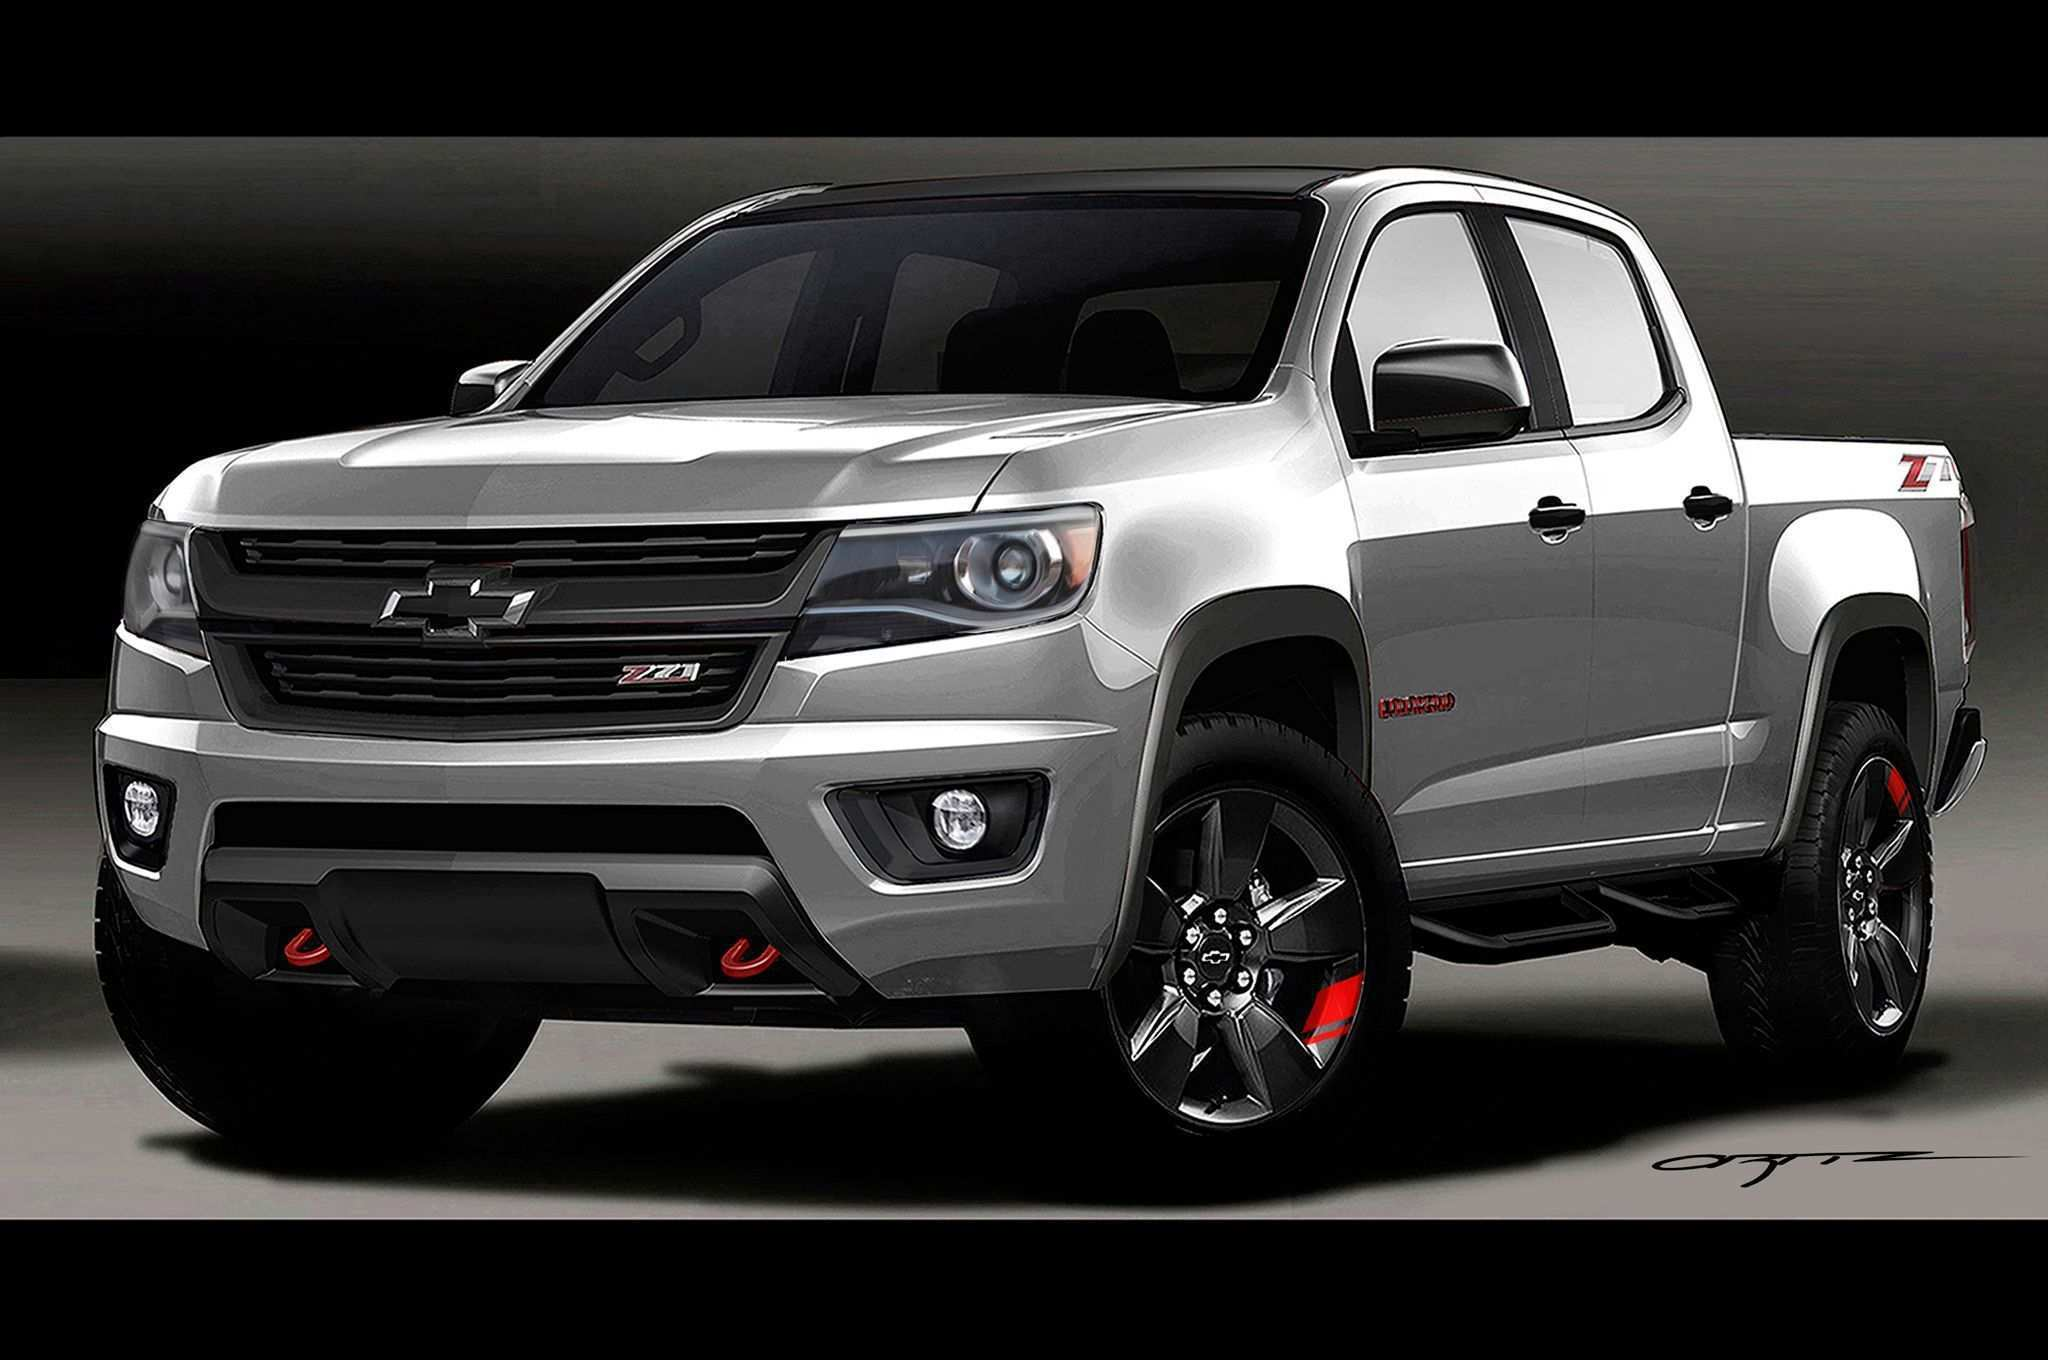 71 Great 2020 Chevrolet Colorado Concept for 2020 Chevrolet Colorado